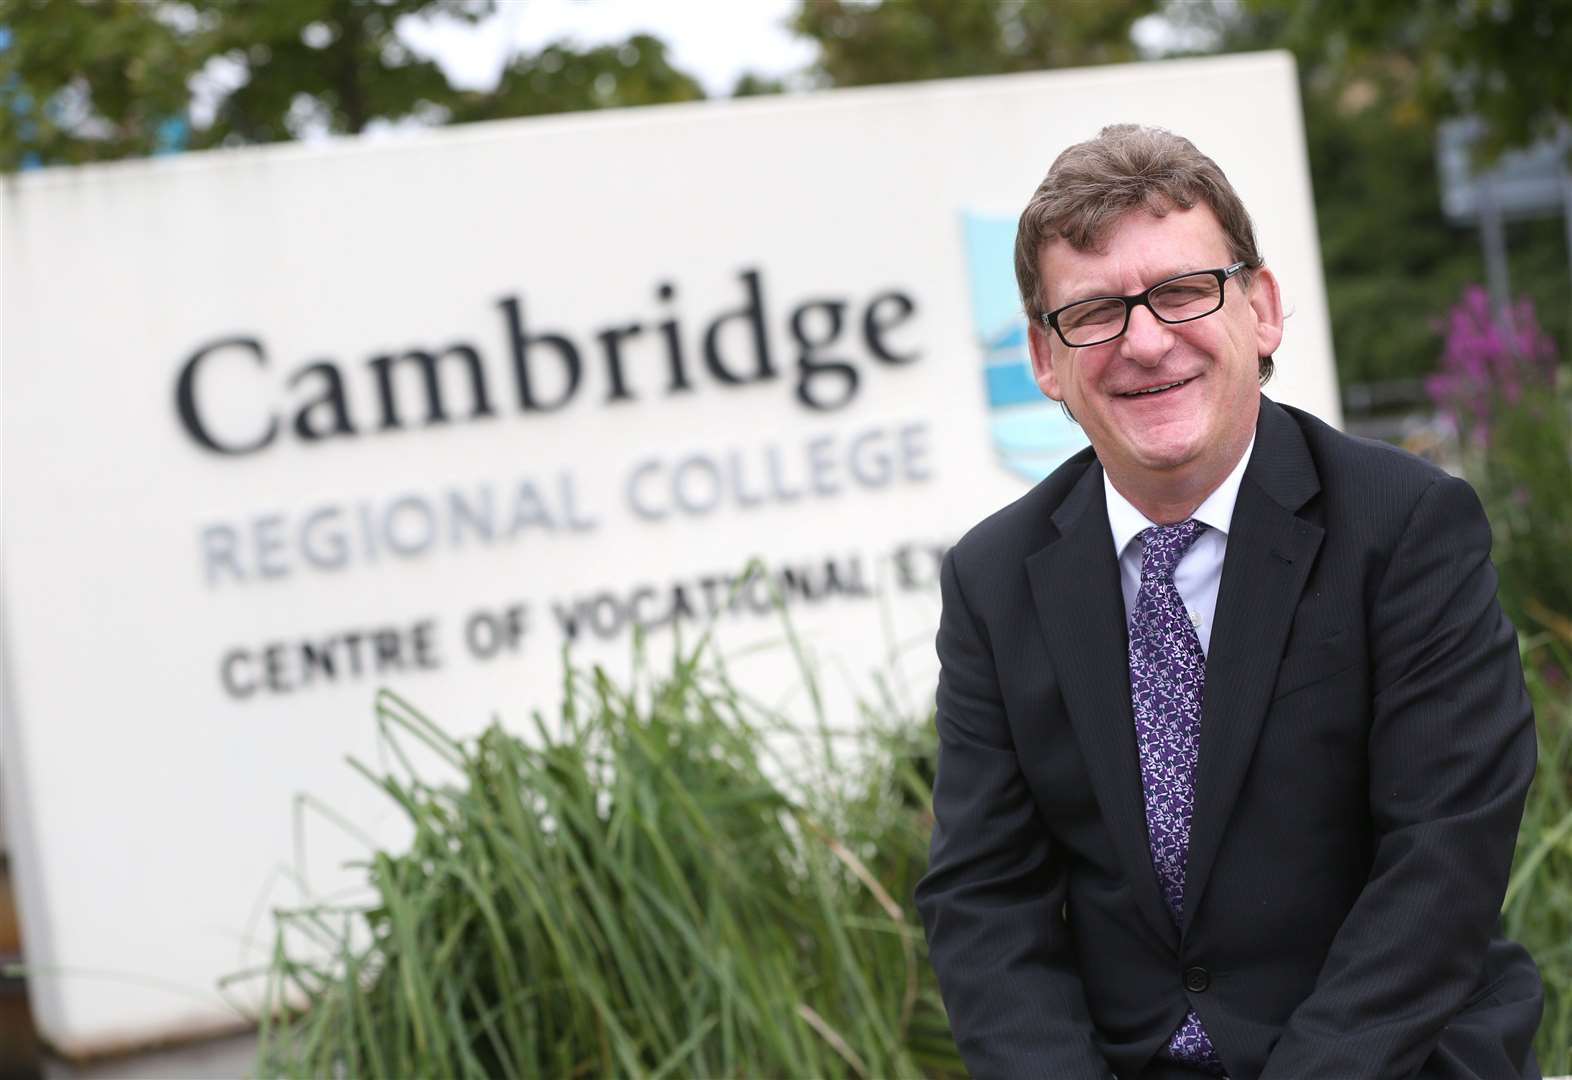 Top 10 ranking for Cambridge Regional College in latest further education table